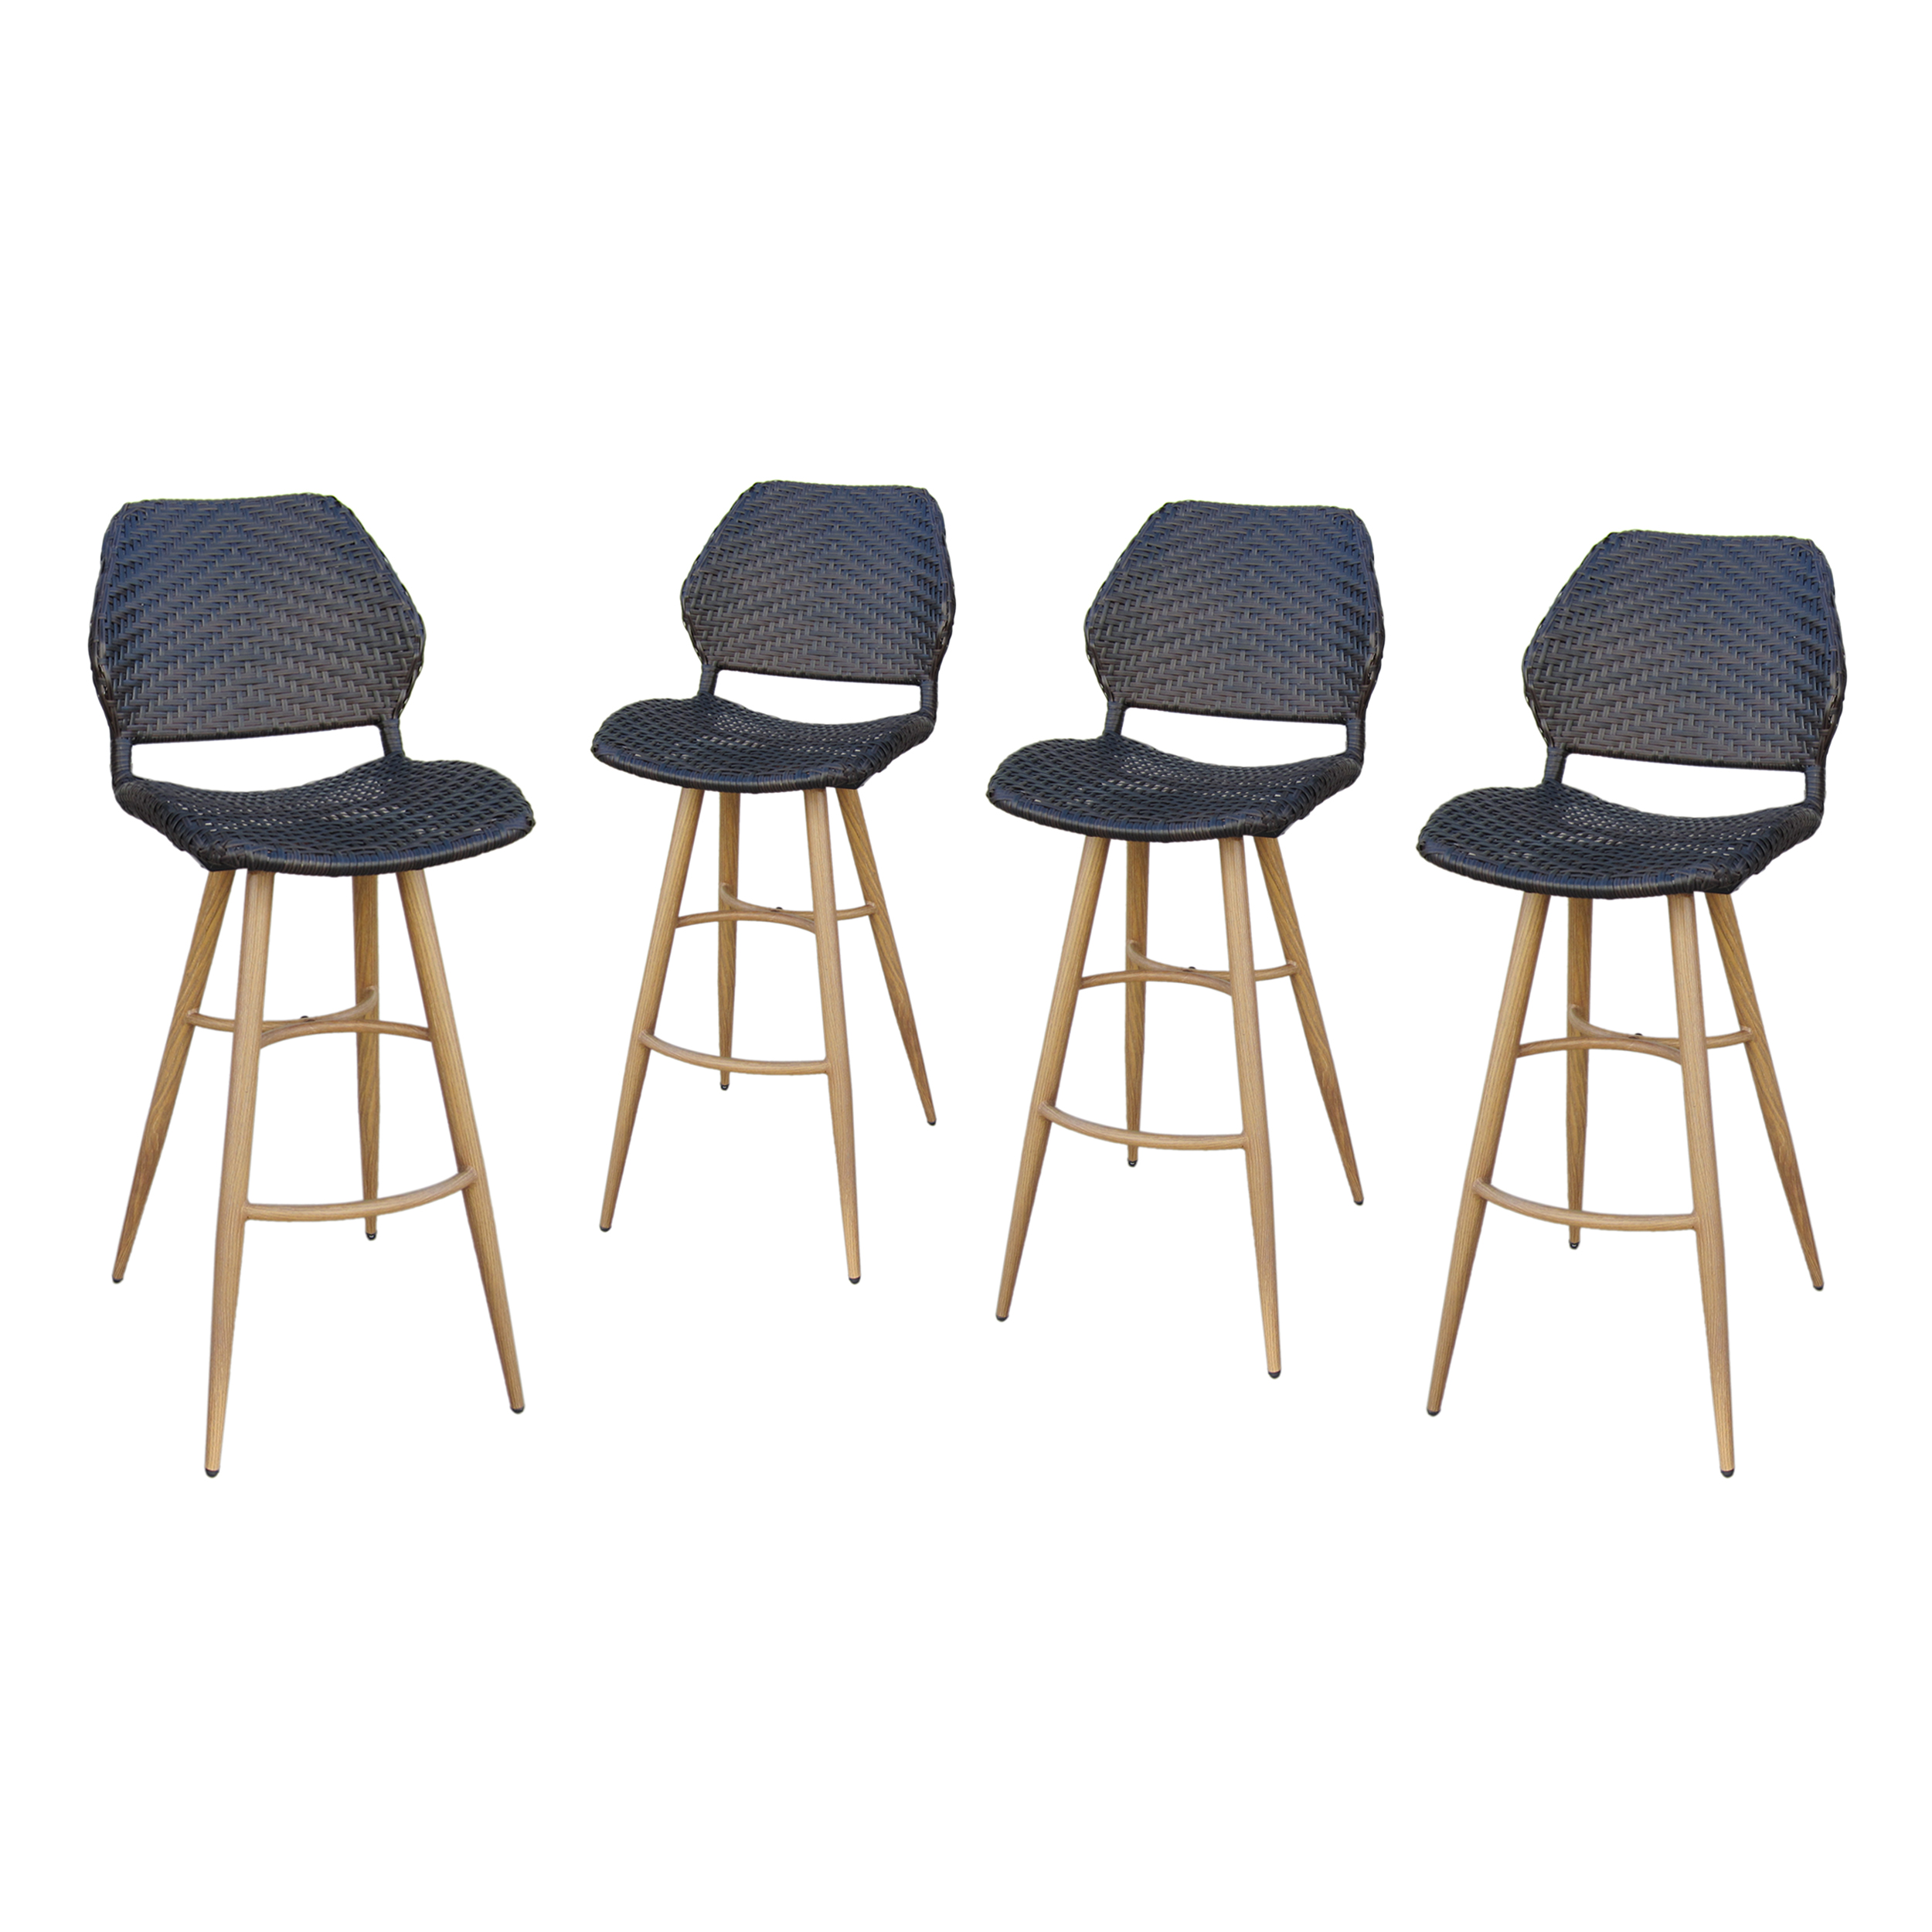 Amaryllis Outdoor Wicker Barstools with Metal Legs, Set of 4, Multibrown and Brown Wood Finish